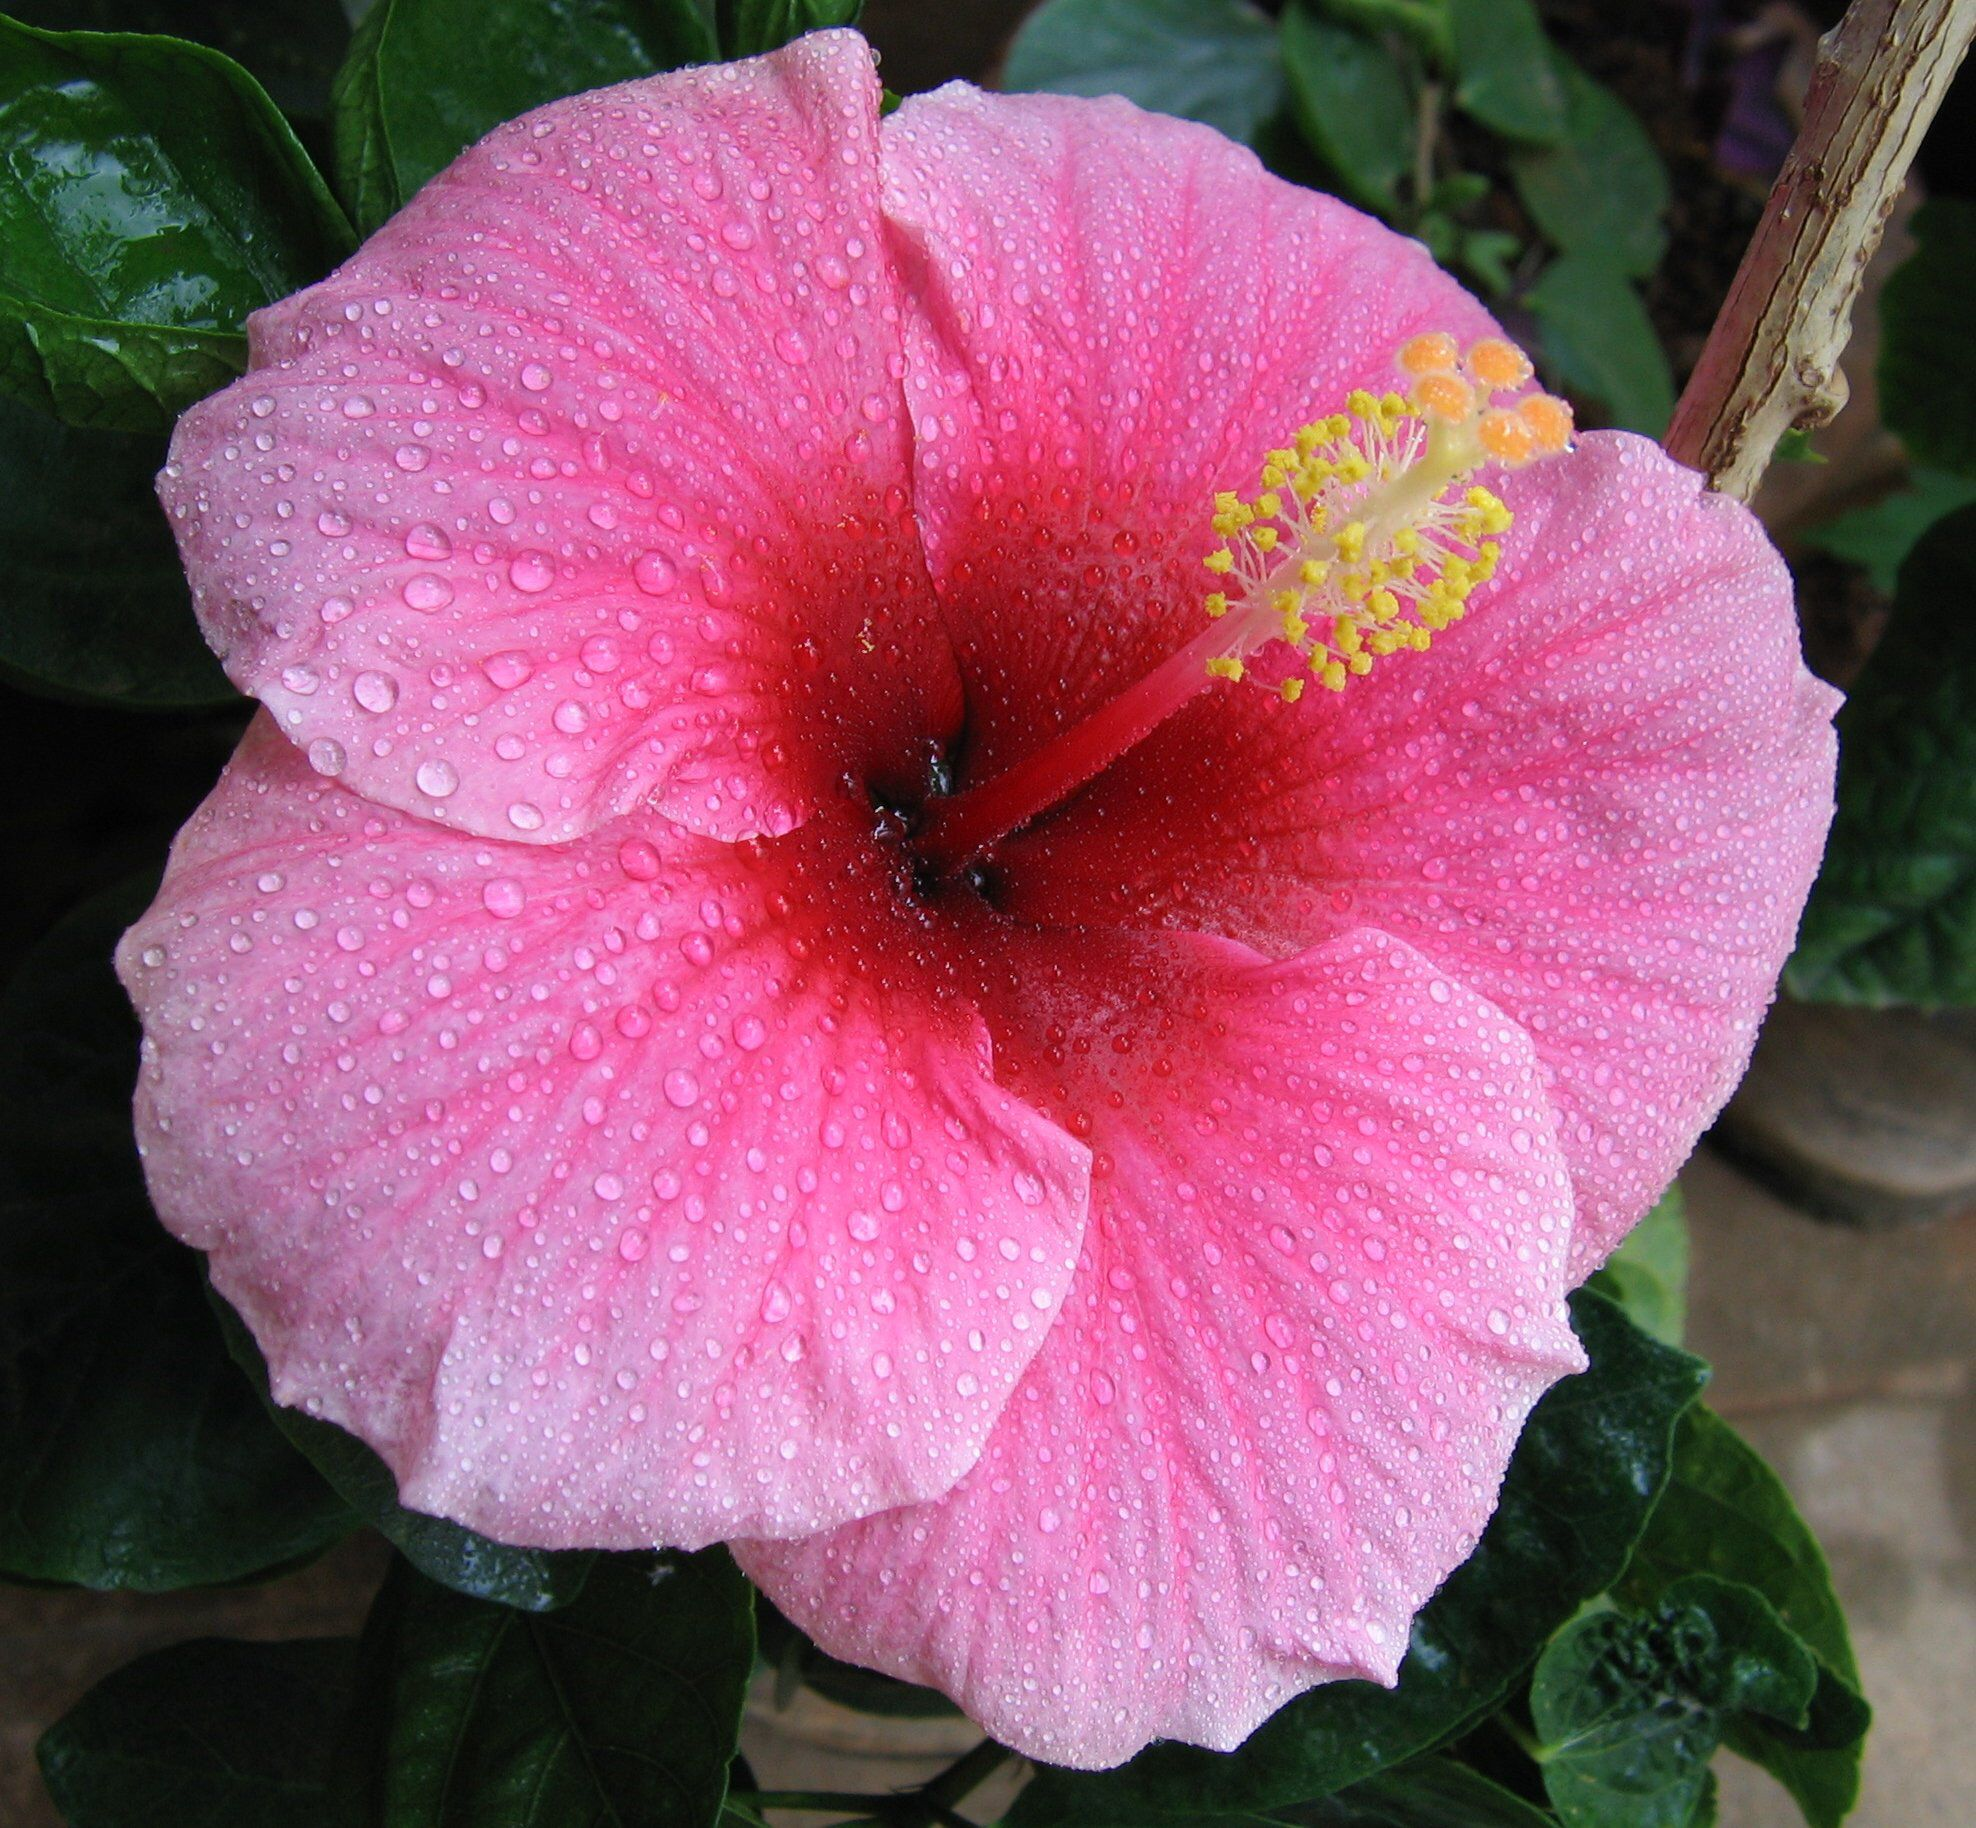 Puerto Rico's national flower is the flor de maga. The